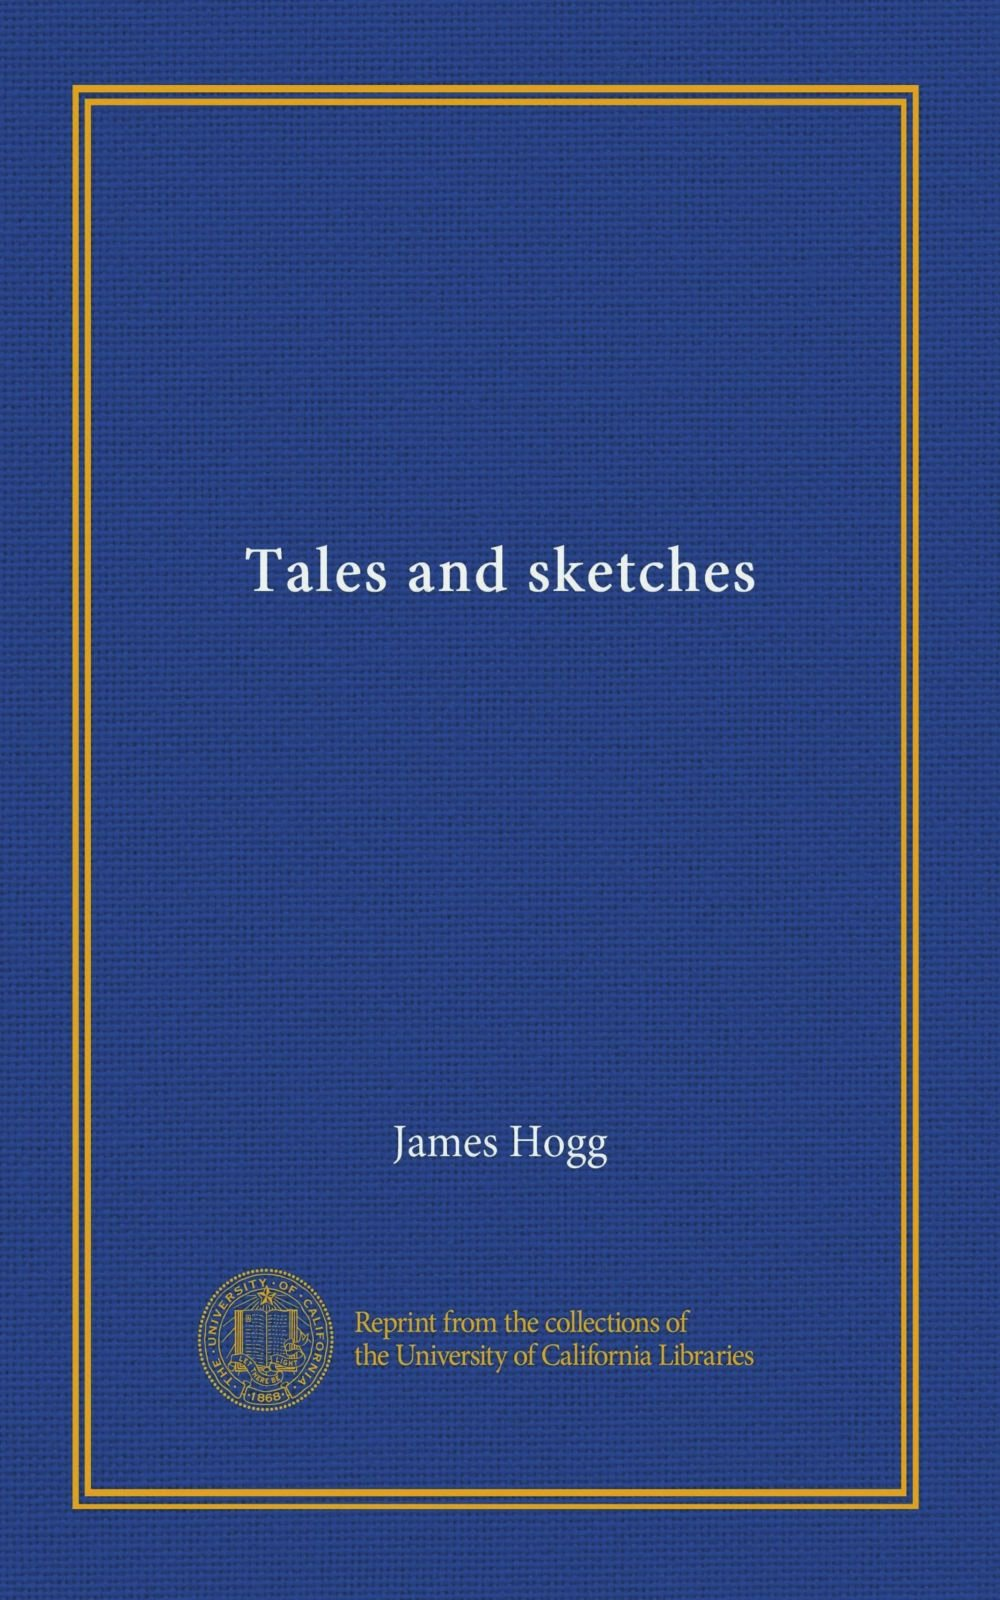 Tales and sketches (v.05) pdf